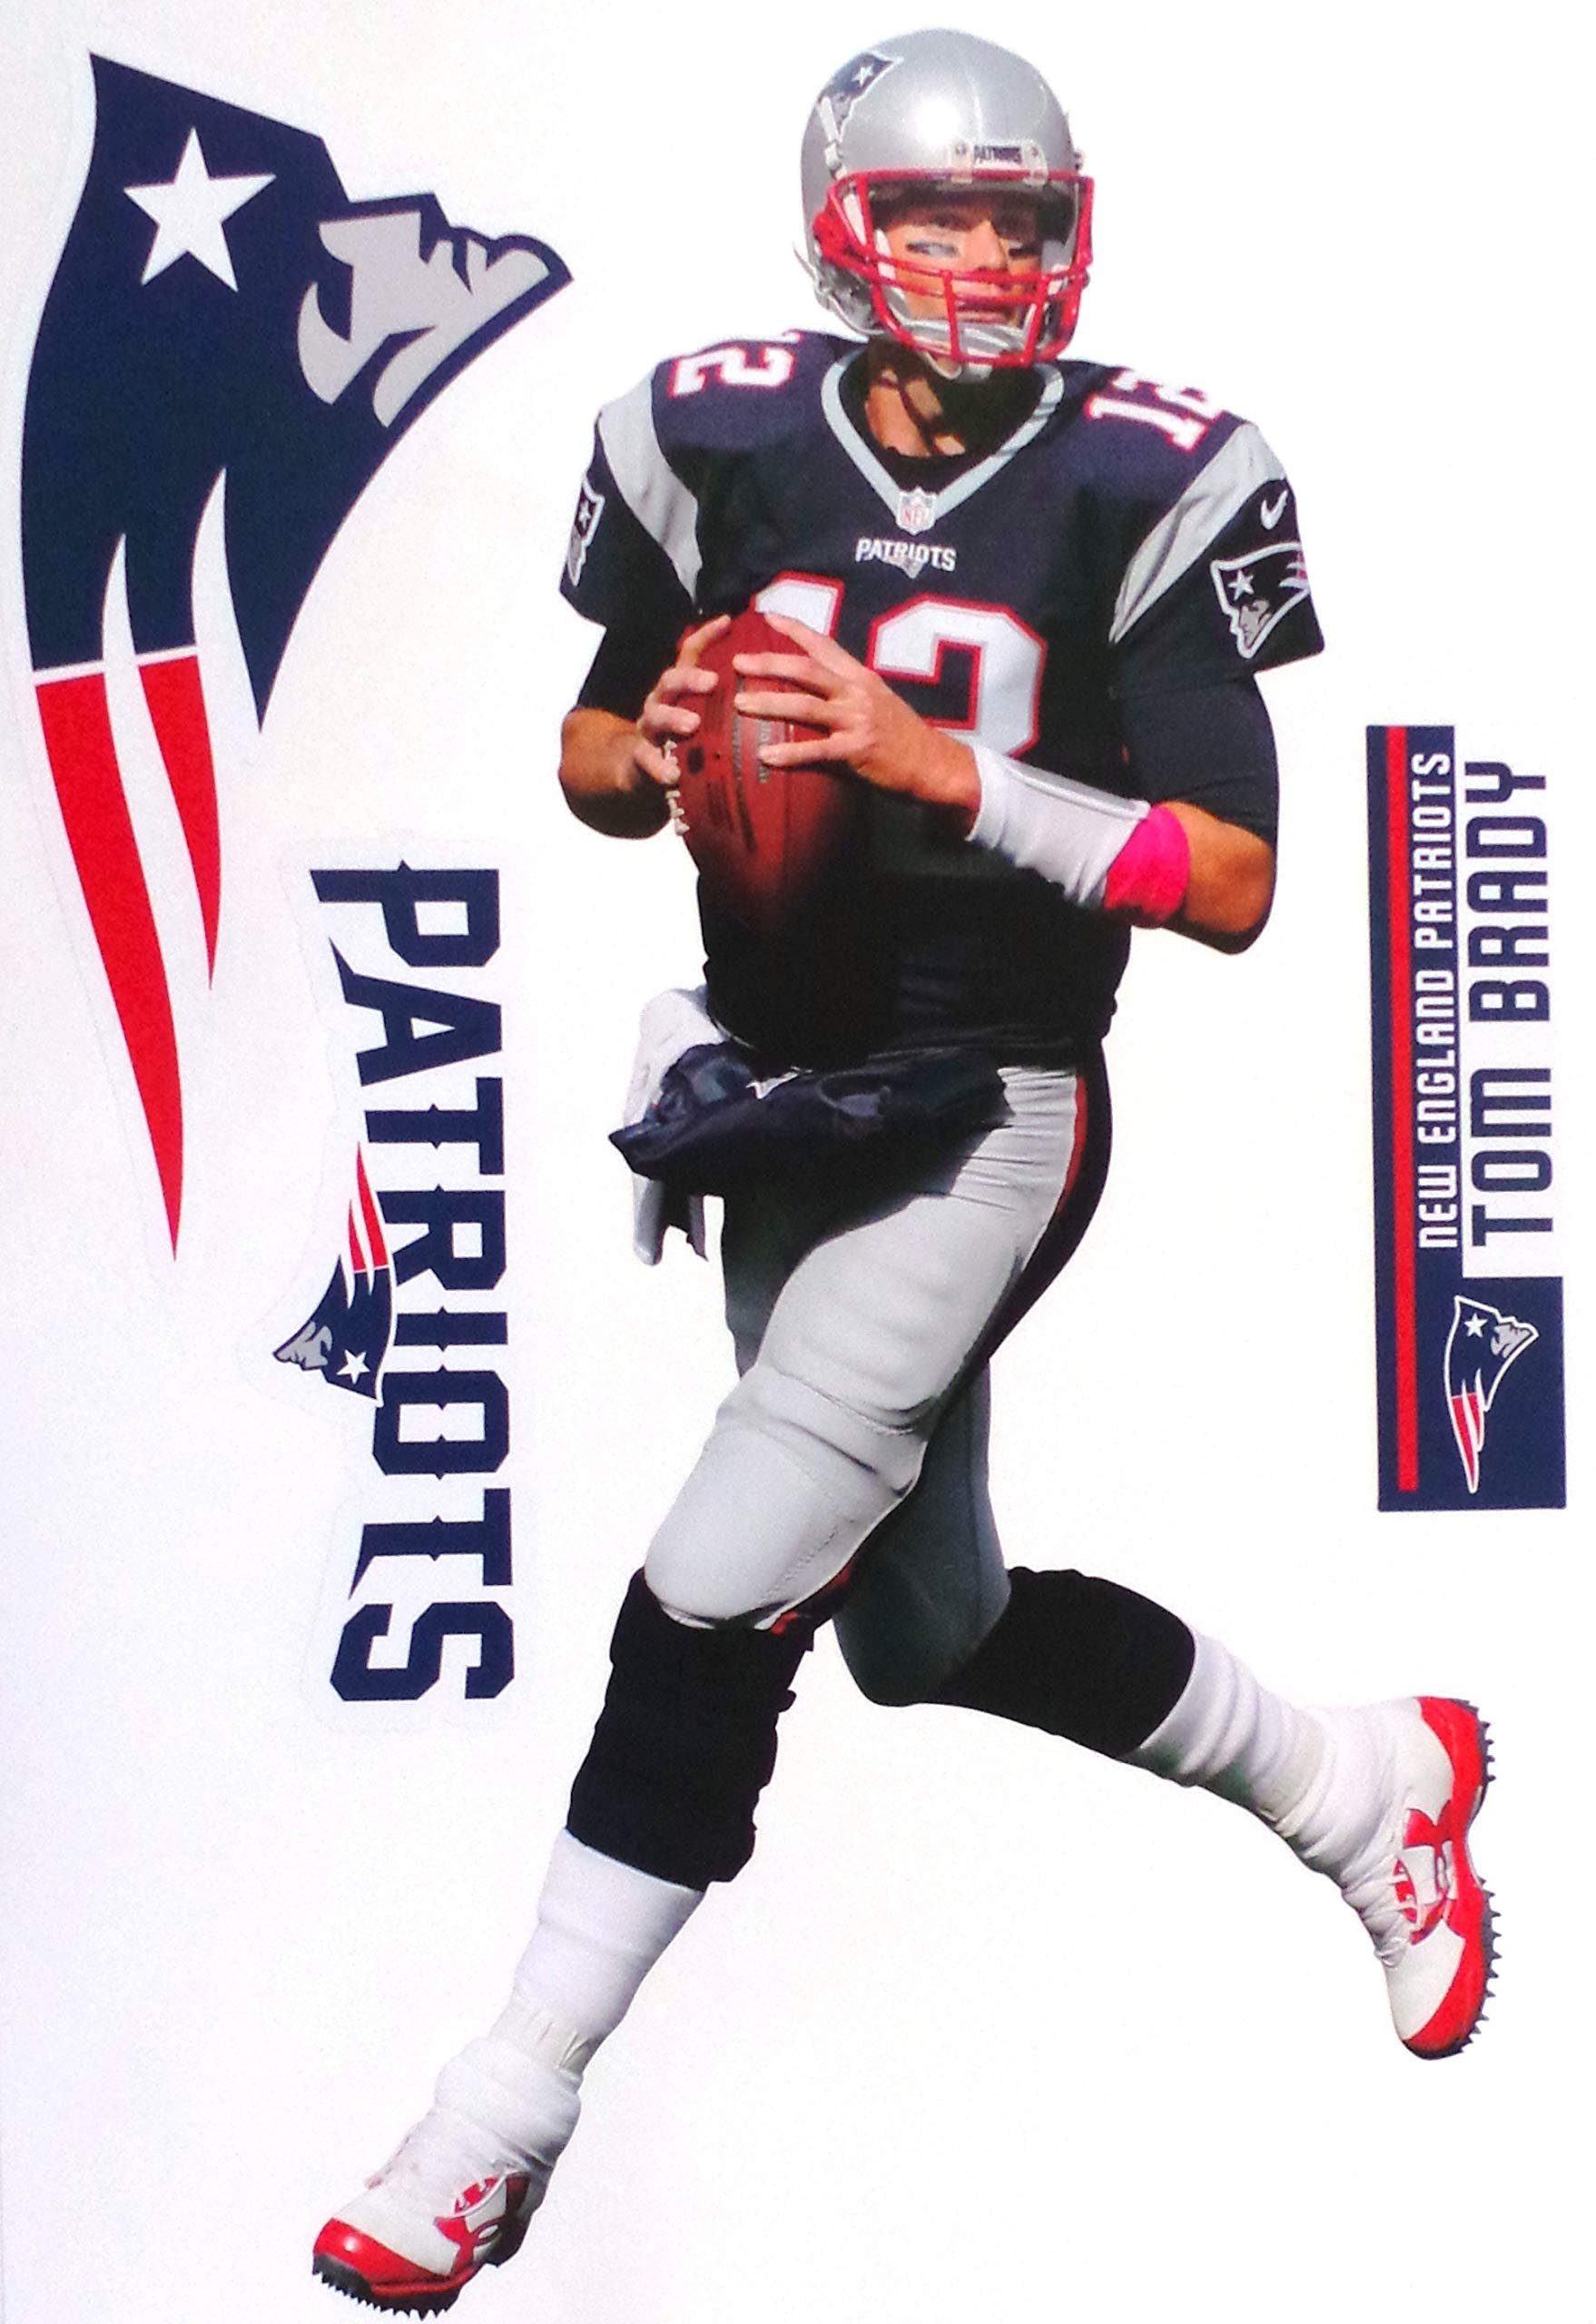 FATHEAD Tom Brady New England Patriots Official NFL Vinyl Wall Graphic 17'' INCH by FATHEAD